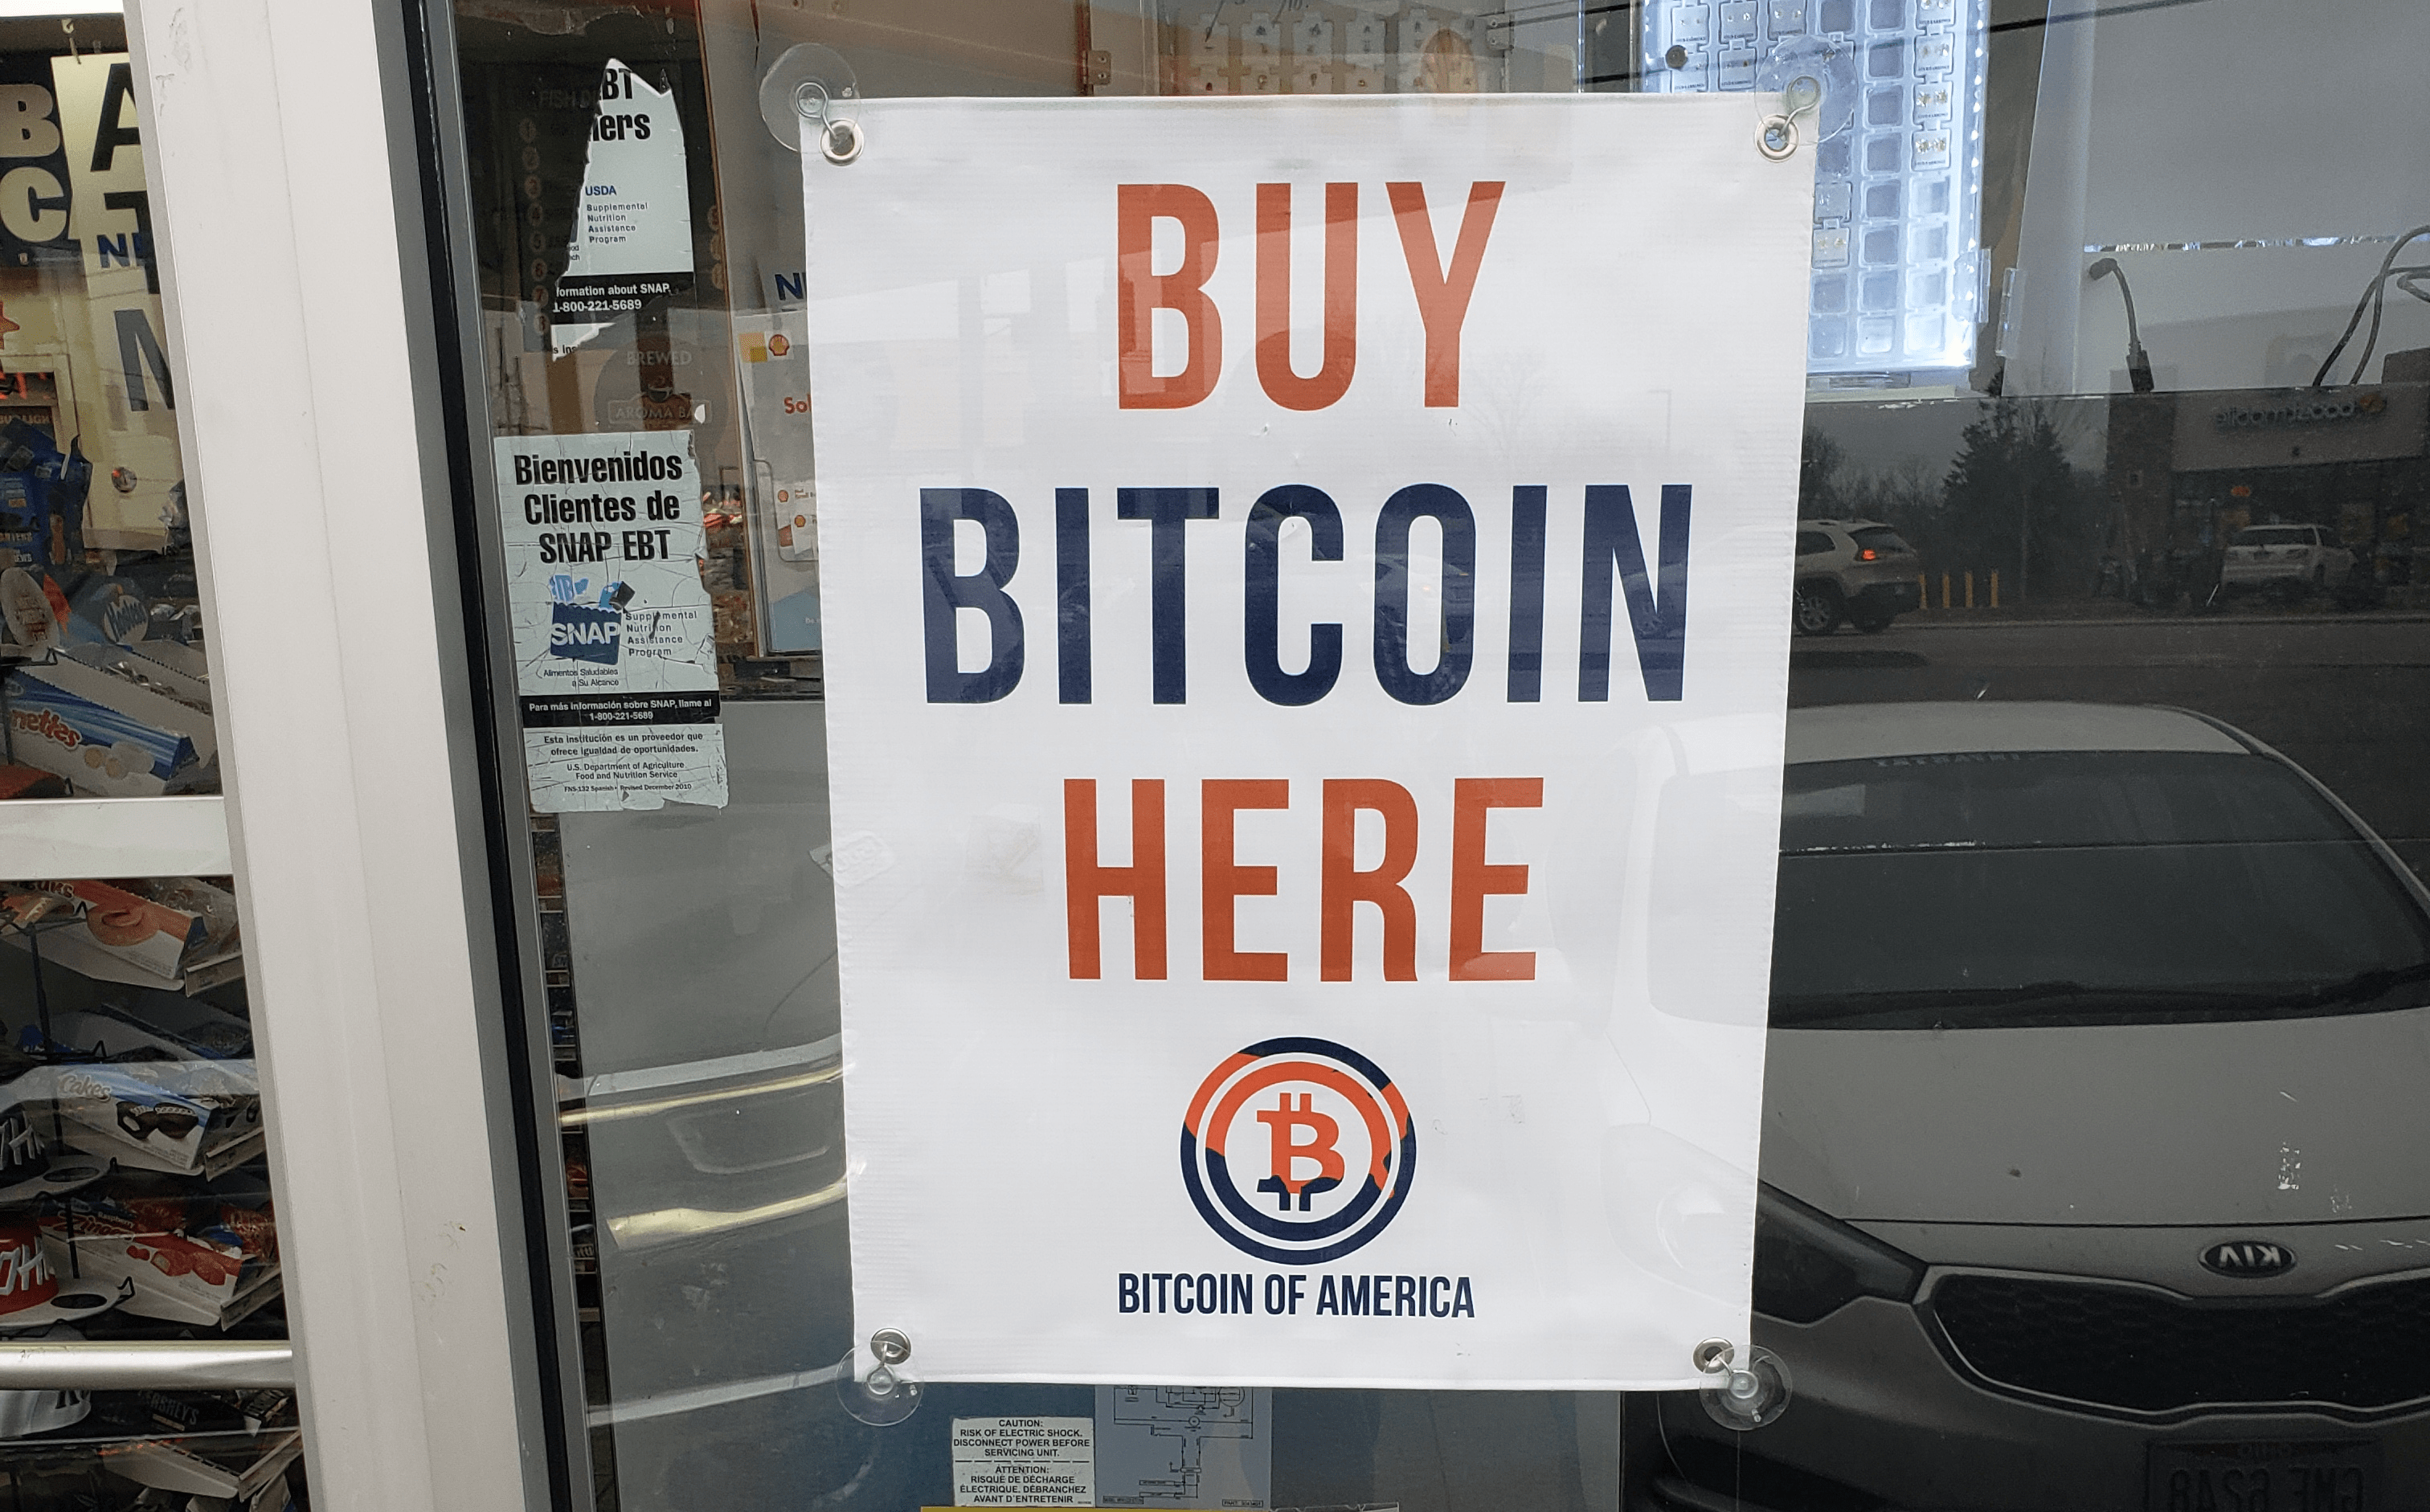 BITCOIN OF AMERICA IS ON THE RISE: EXPANDS TO 600 PLUS ATMS